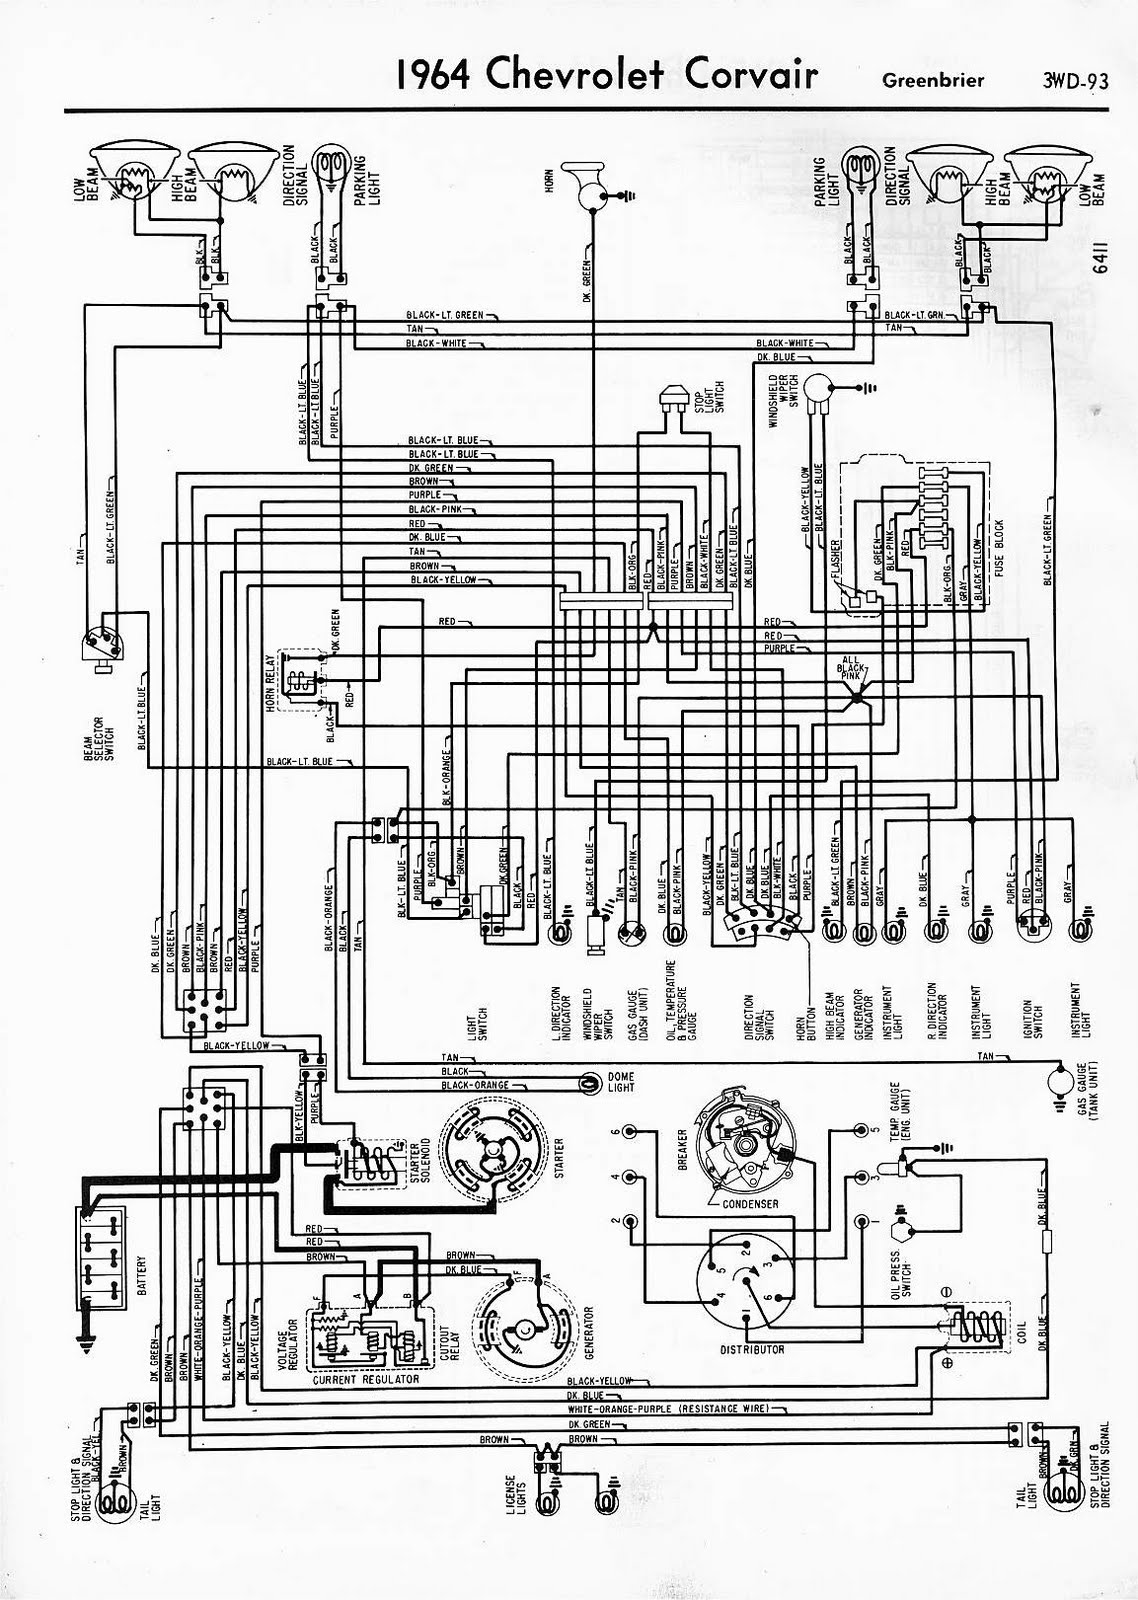 1965 corvair wiring diagram schematic wiring diagram schematic rh packagingmachine co Coil Wiring Diagram 65 Corvair Wiring-Diagram